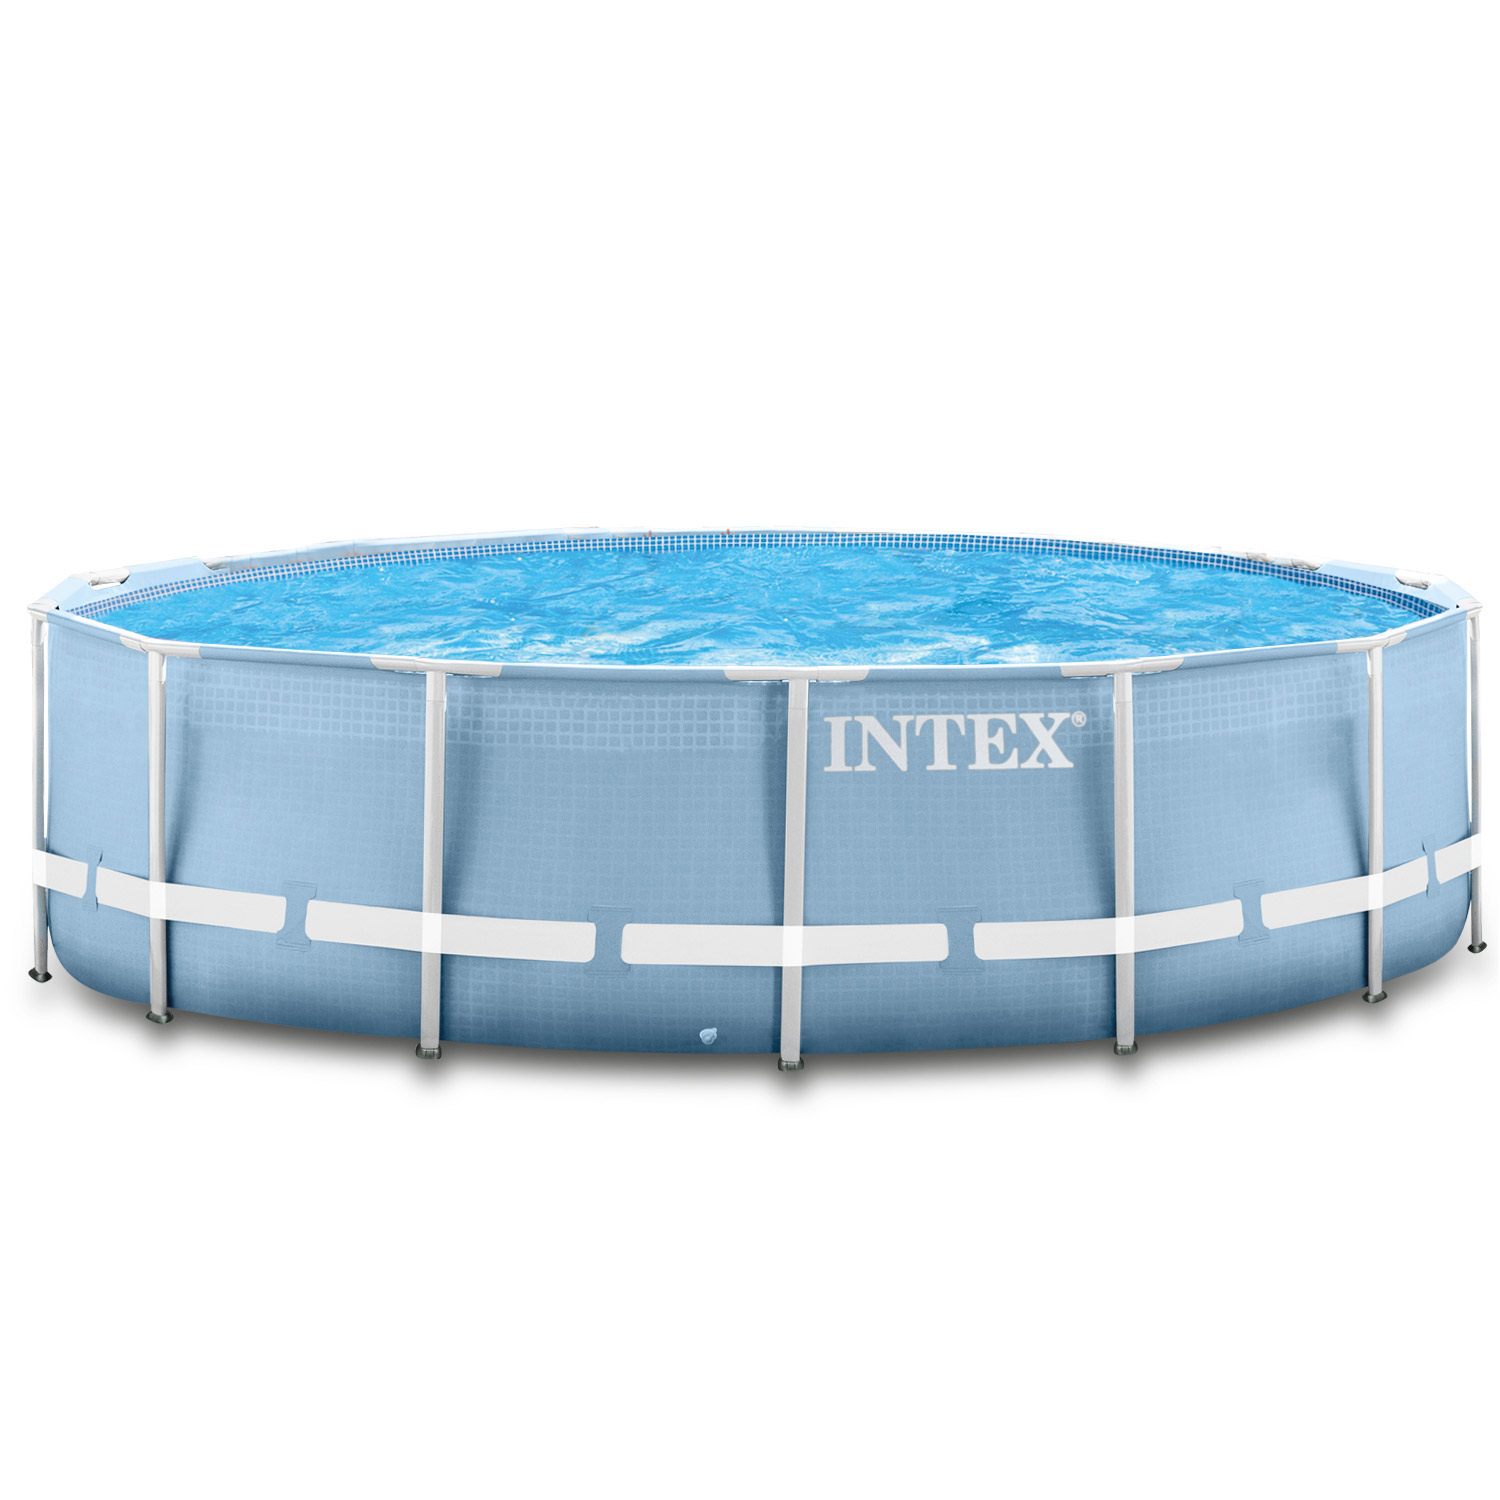 intex swimming pool frame 457x122 cm mit pumpe leiter solarfolie. Black Bedroom Furniture Sets. Home Design Ideas